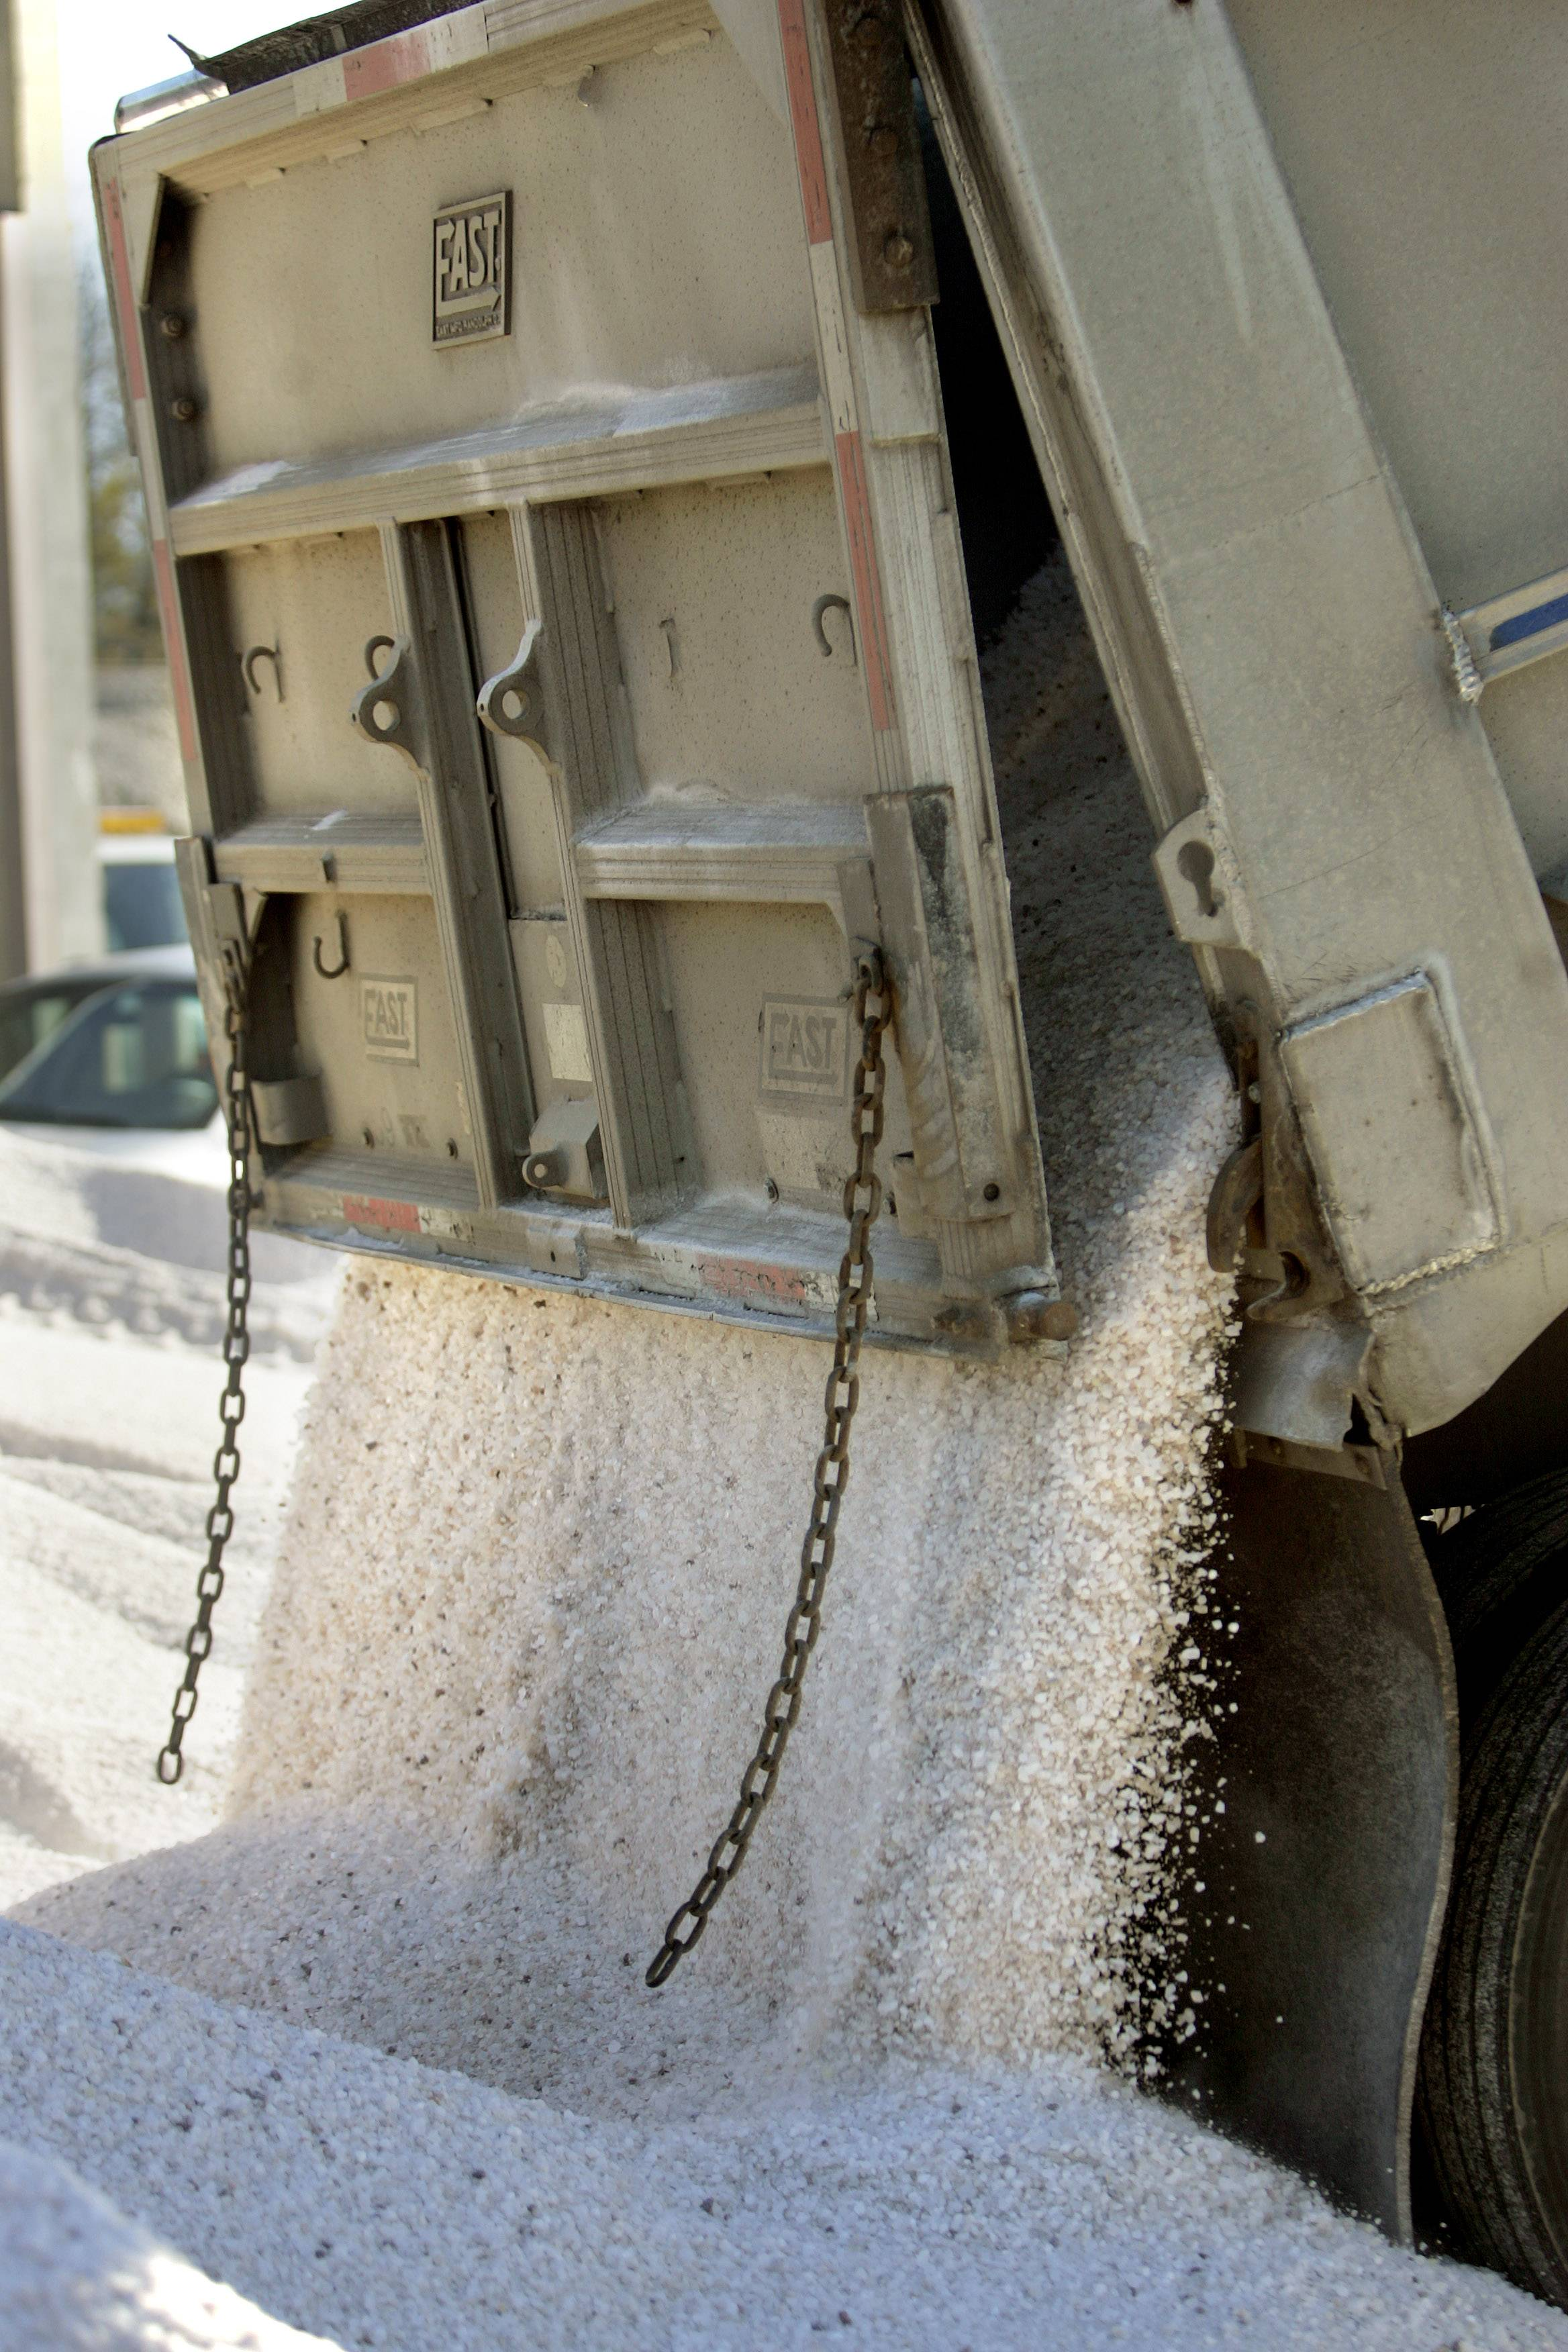 Elk Grove Village is planning to stockpile 6,260 tons of salt in anticipation of winter, officials said.